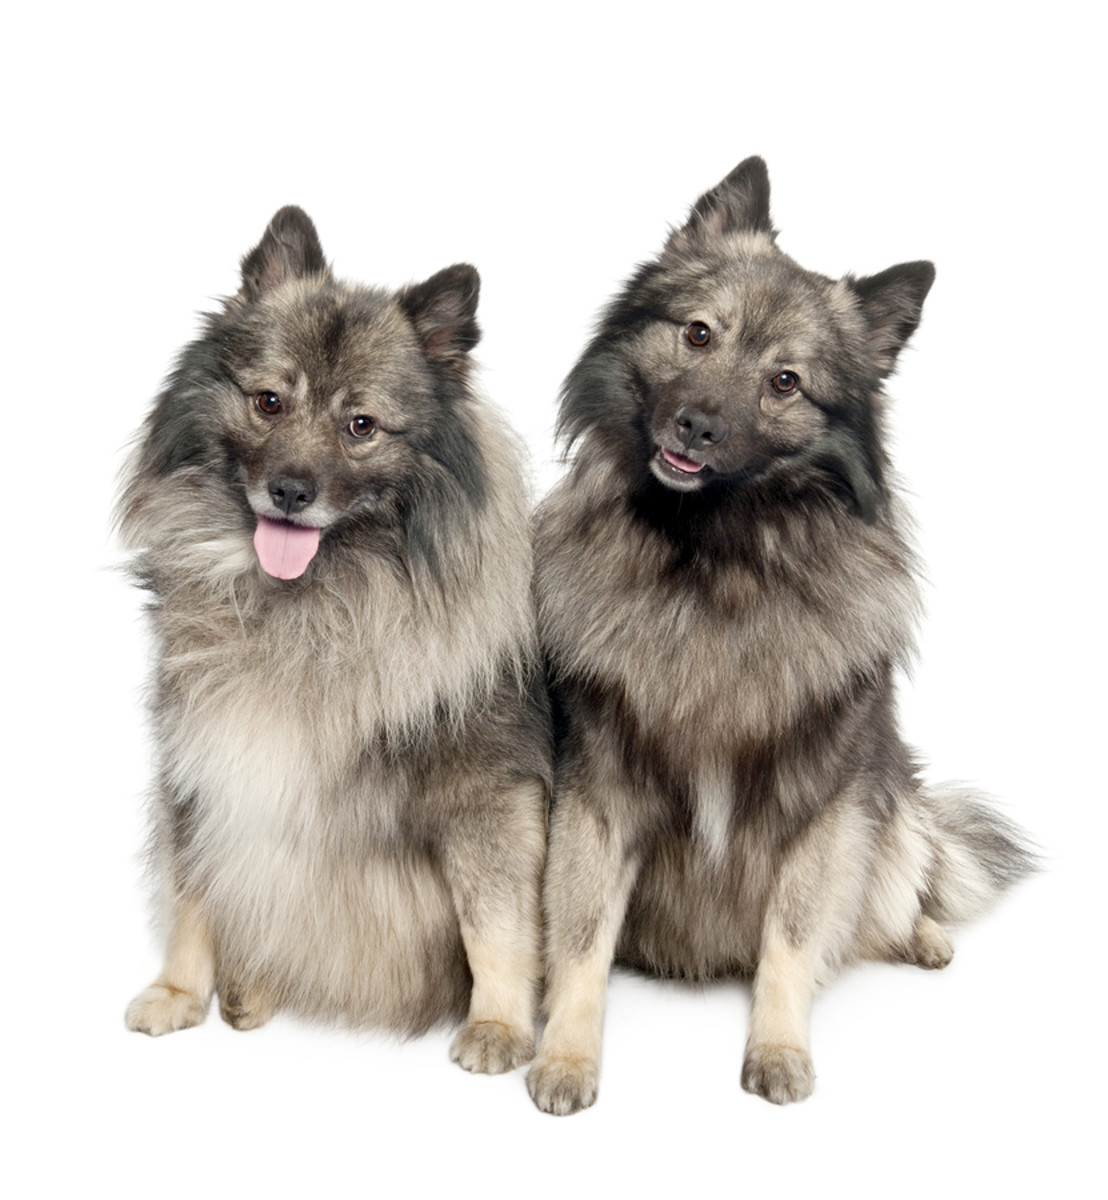 The Keeshond enjoys the company of other dogs!